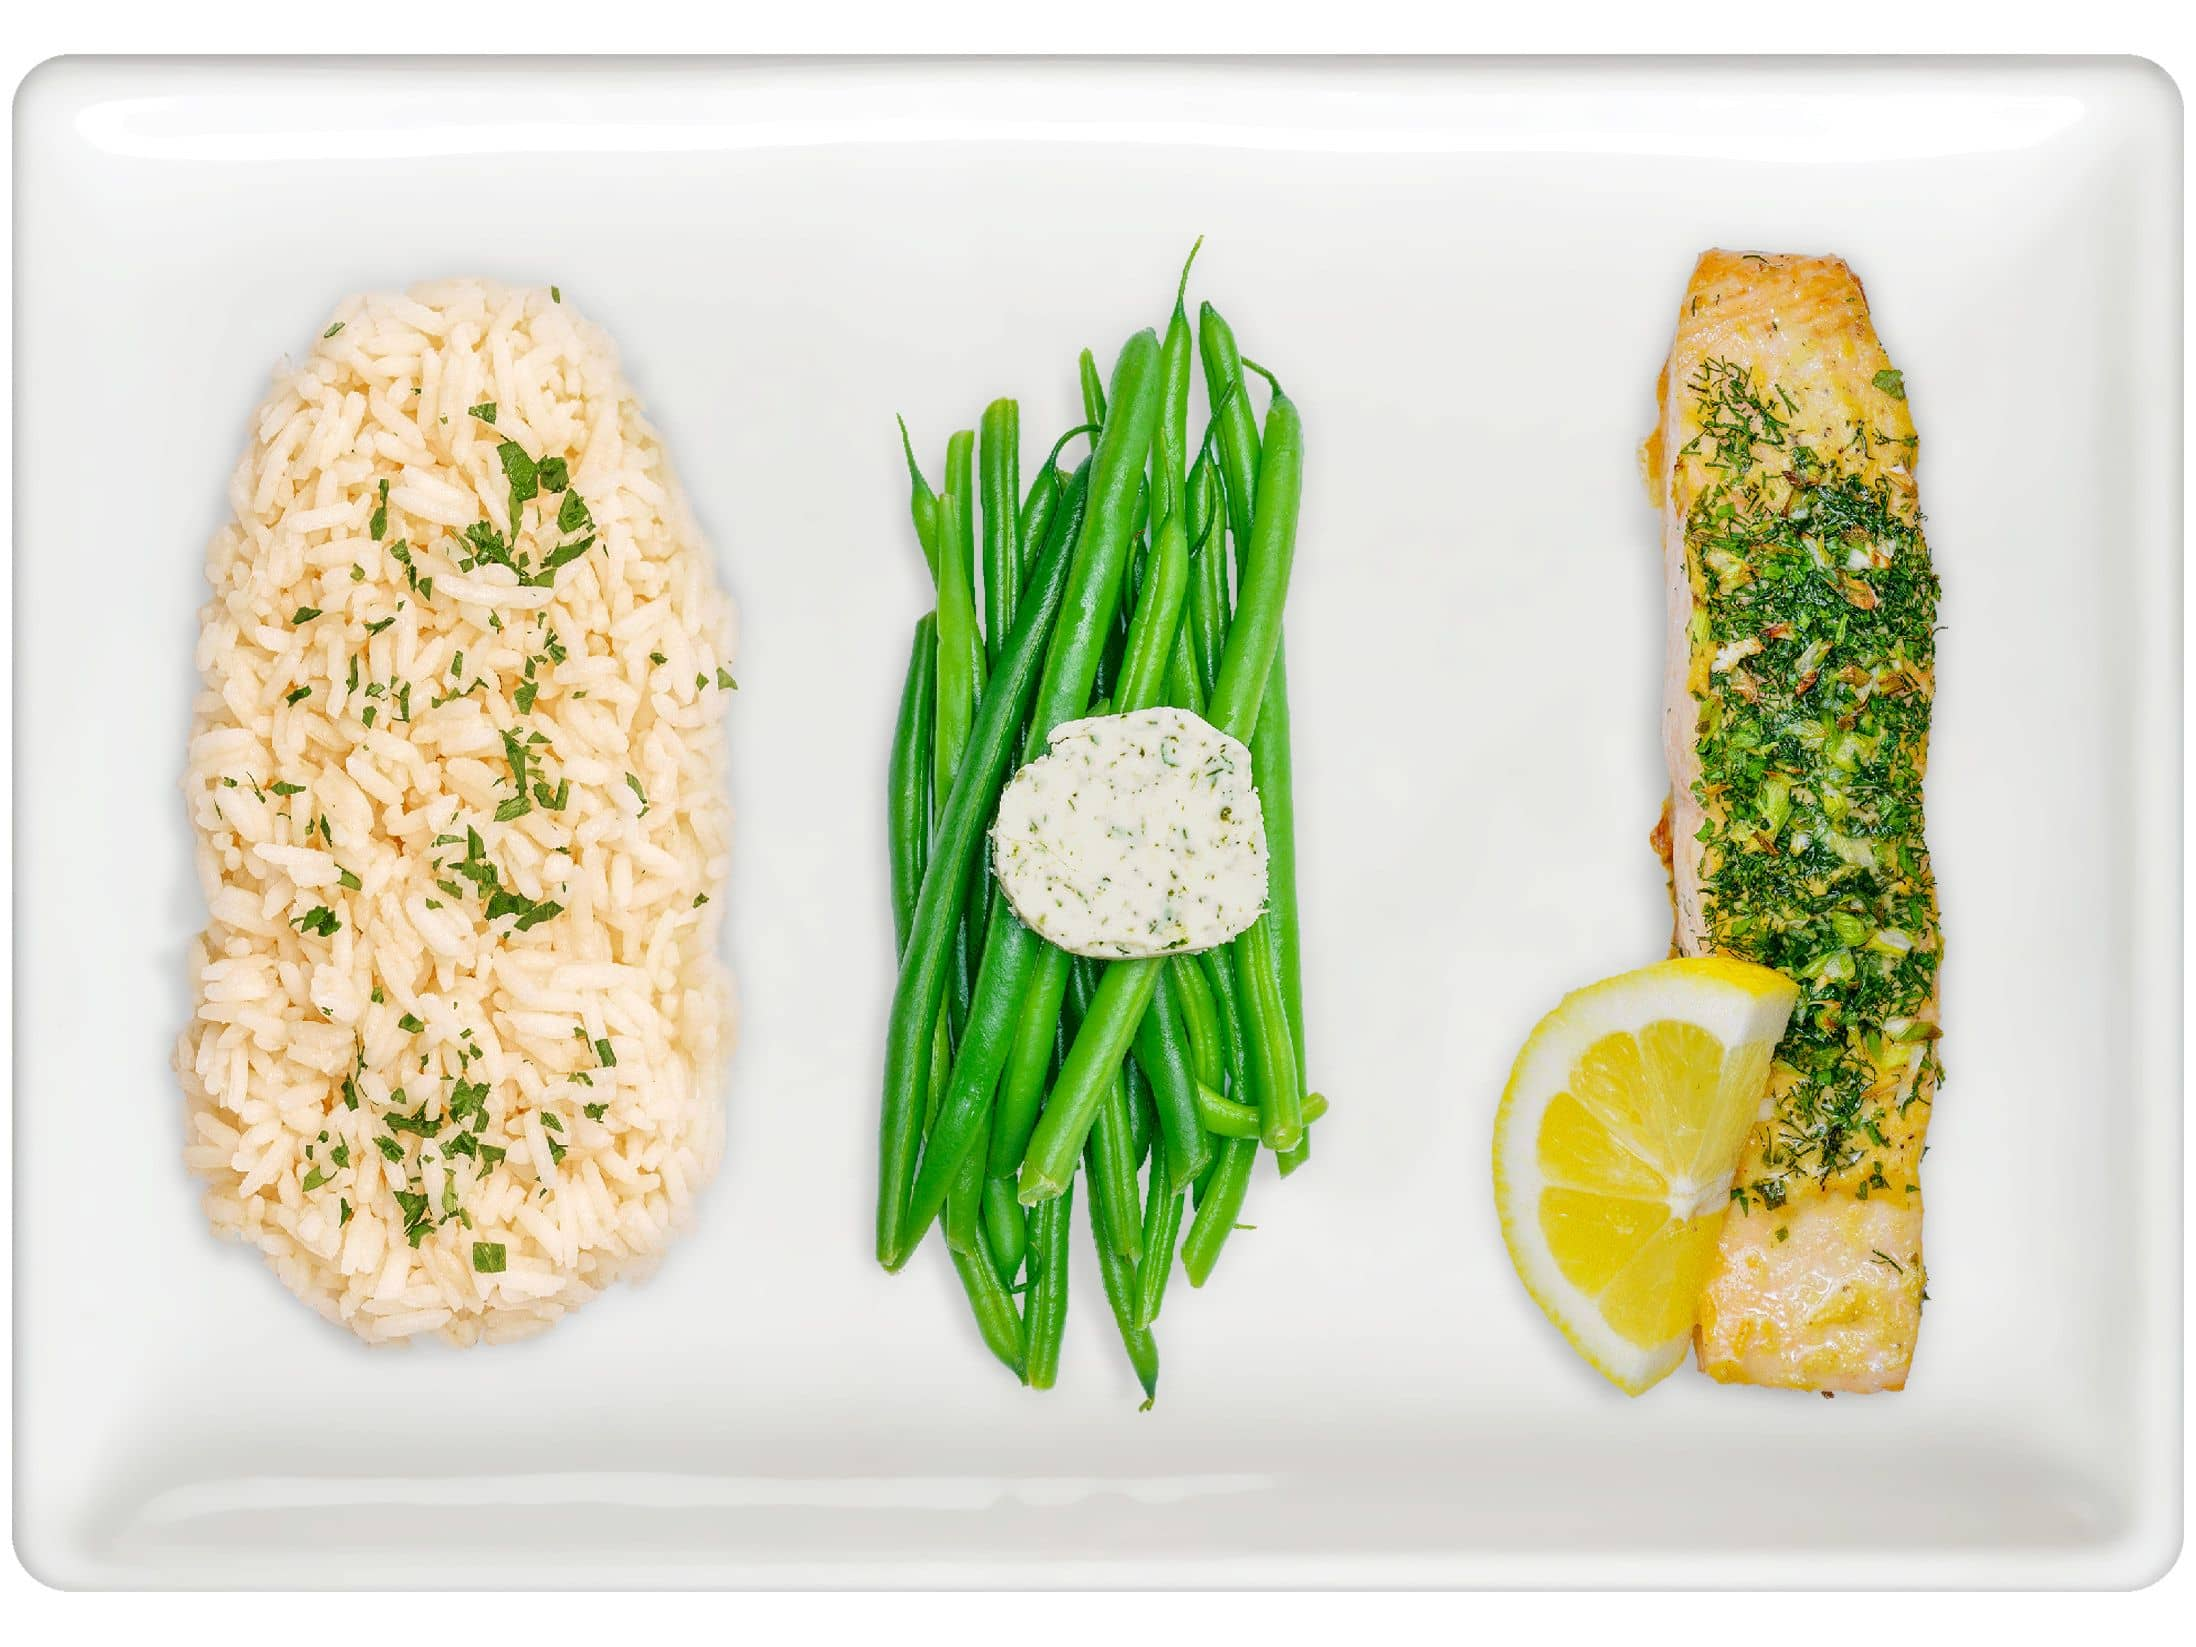 Basmati Rice Pilaf, Green Beans, Herb-Roasted Salmon